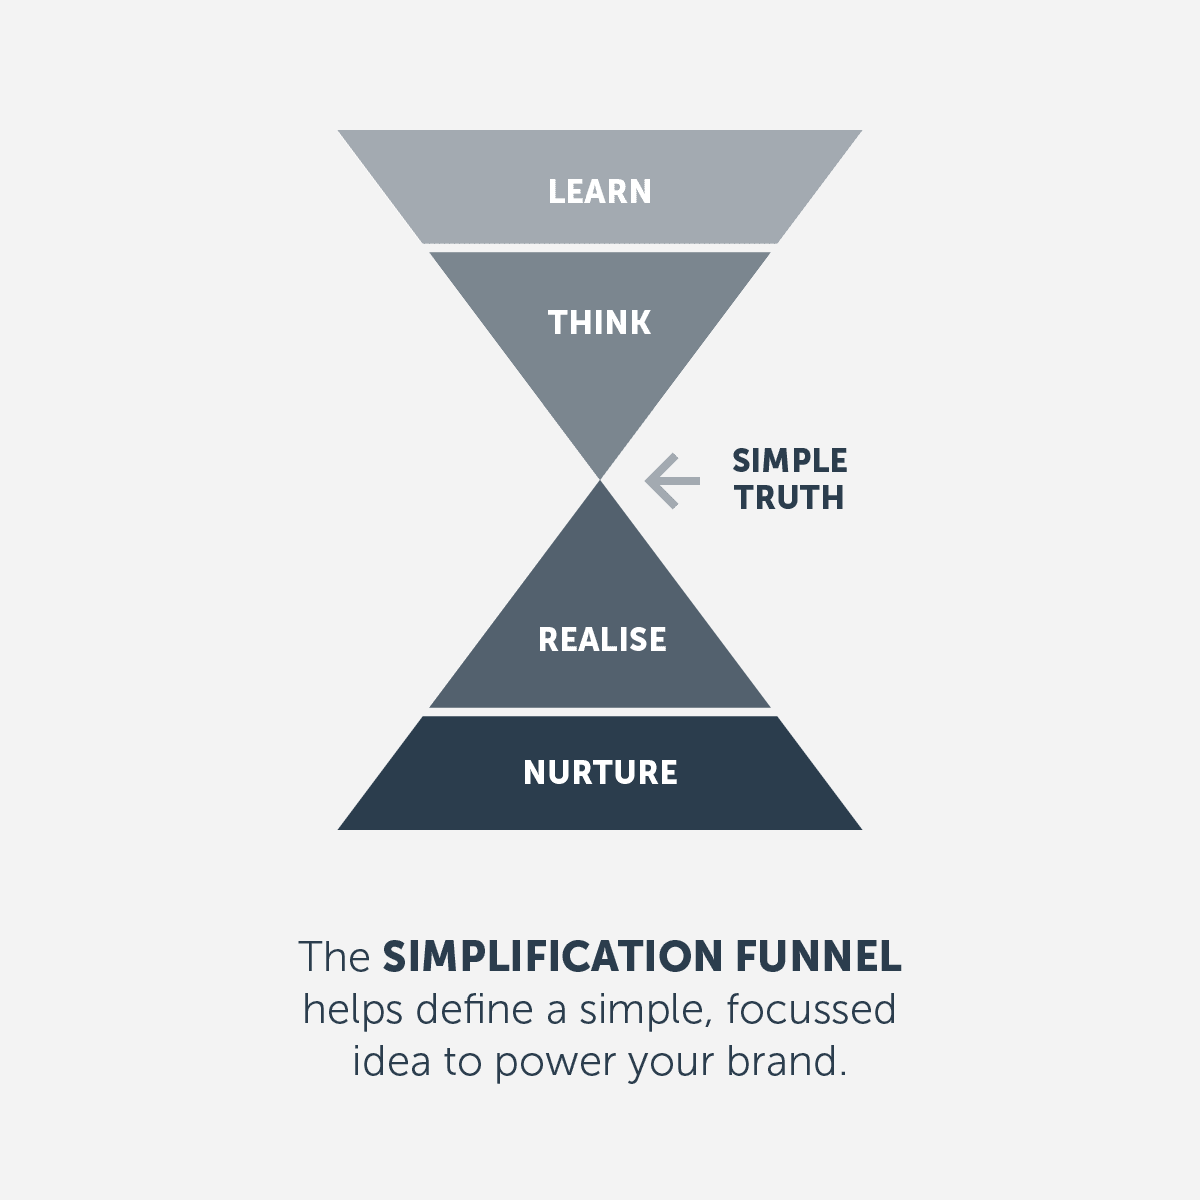 Simplification funnel